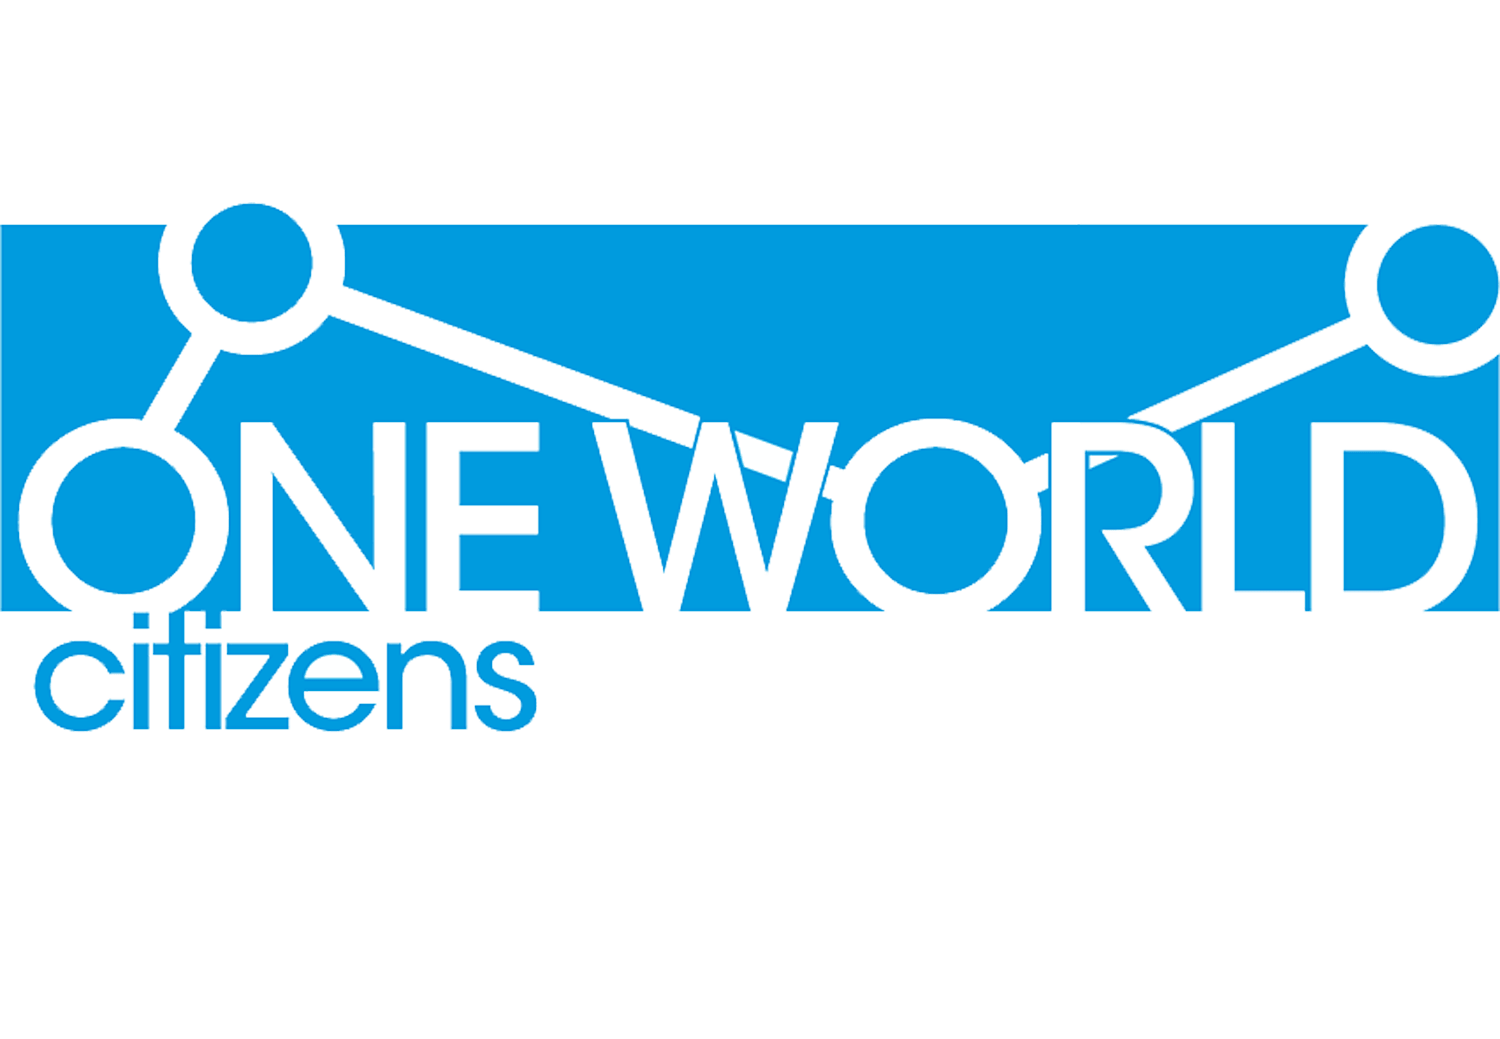 One World Citizens